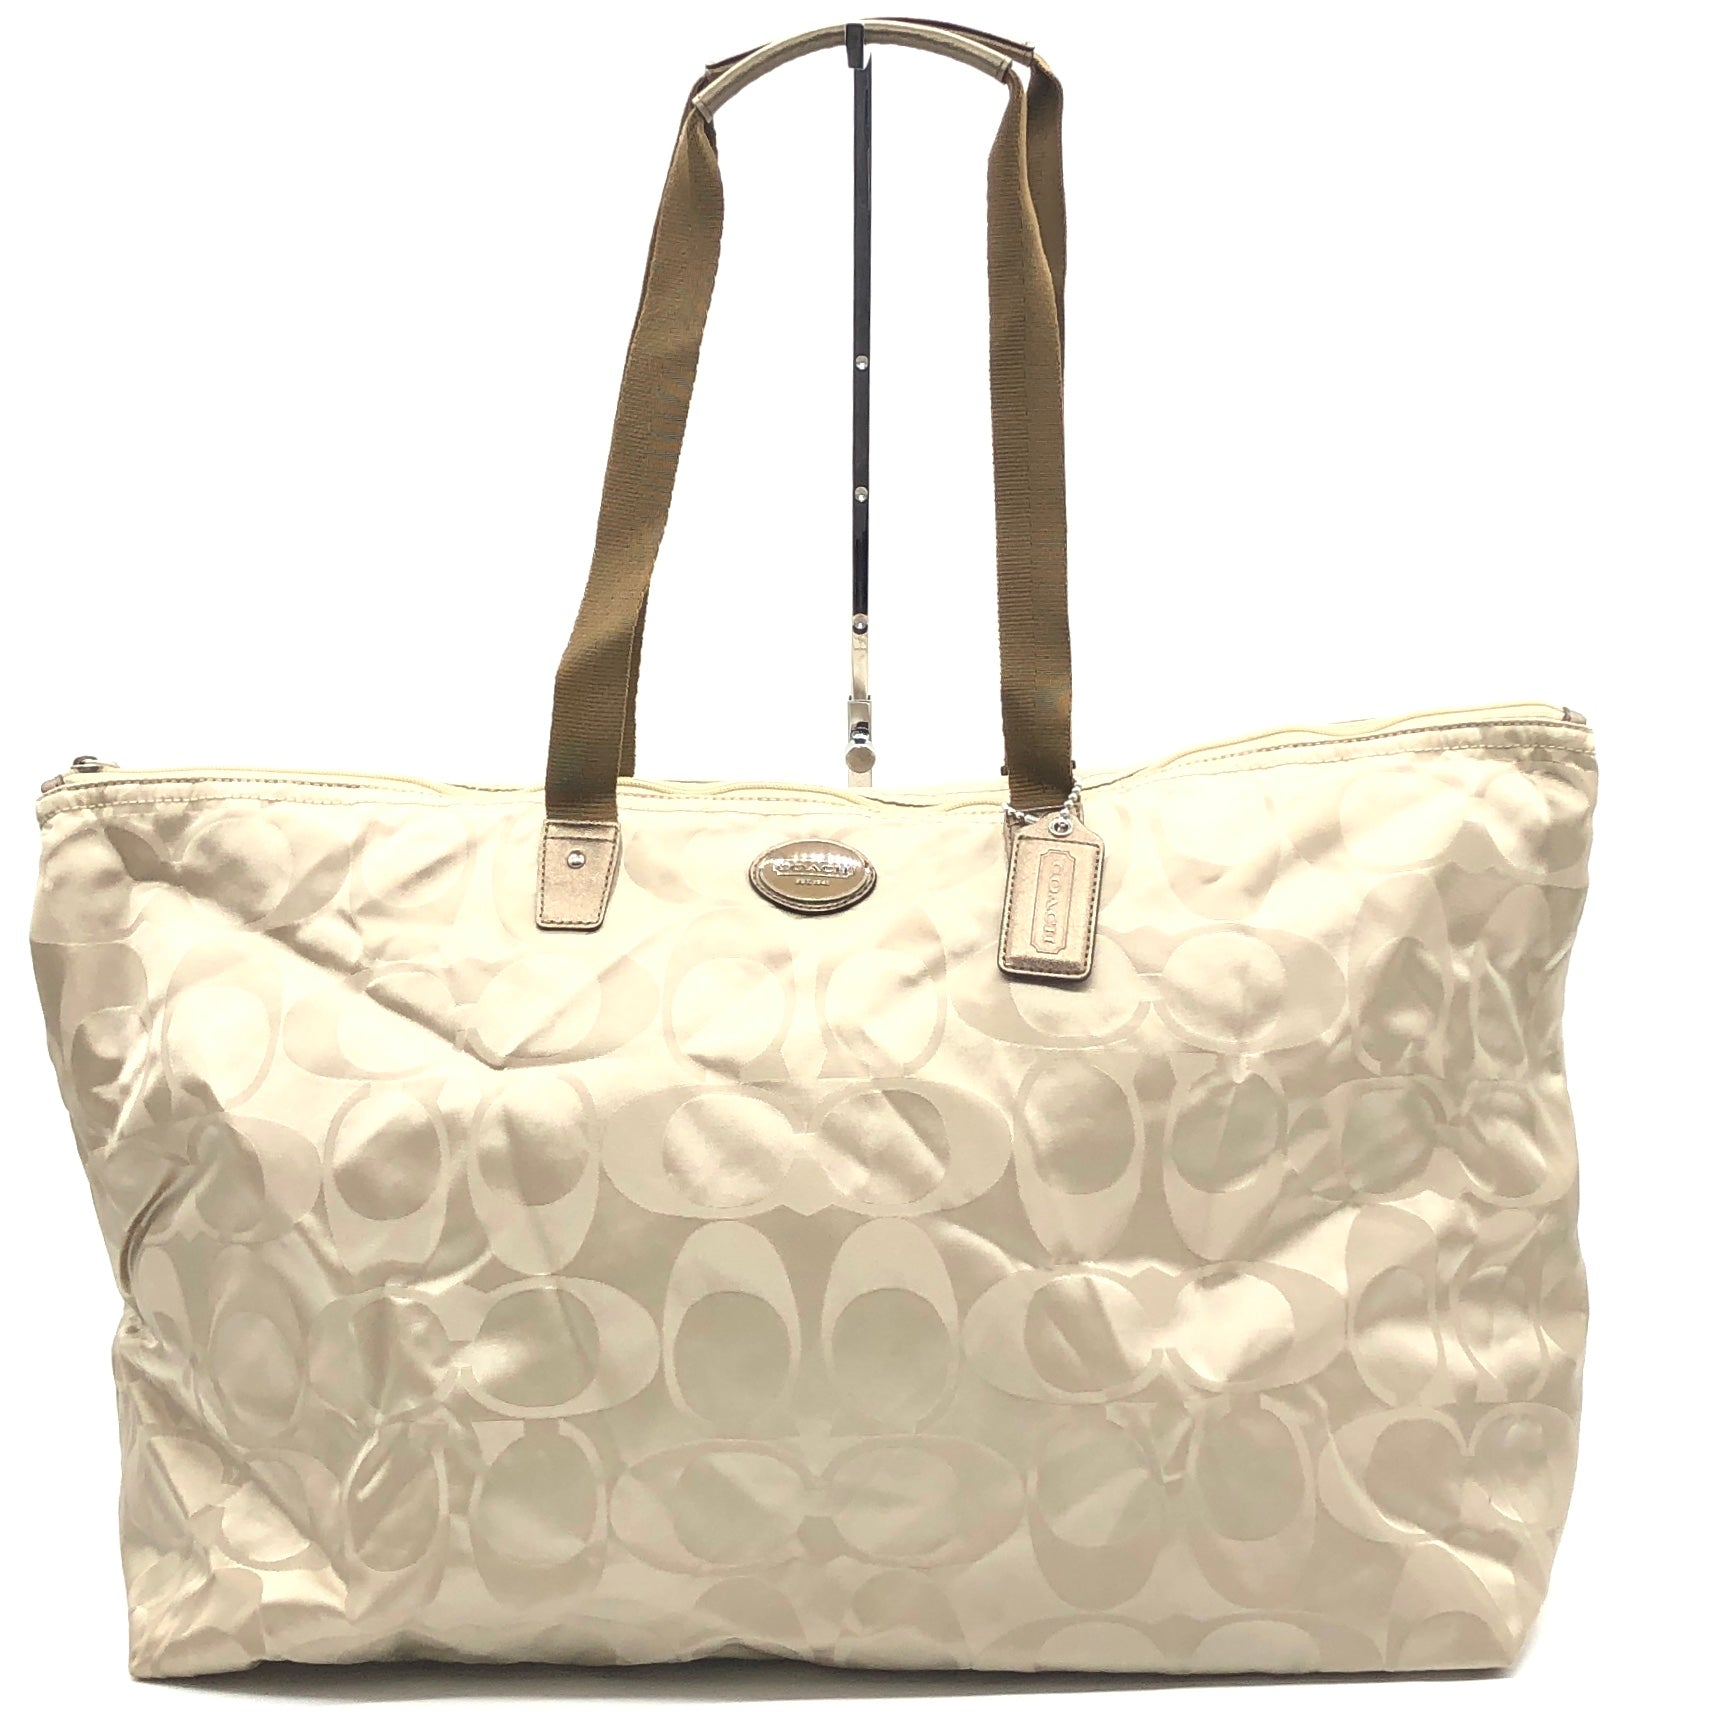 "Primary Photo - BRAND: COACH <BR>STYLE: HANDBAG <BR>COLOR: BEIGE <BR>SIZE: LARGE 14""H X 23""L X 9""H<BR>SKU: 262-26275-74432<BR>GENTLE WEAR - AS IS"